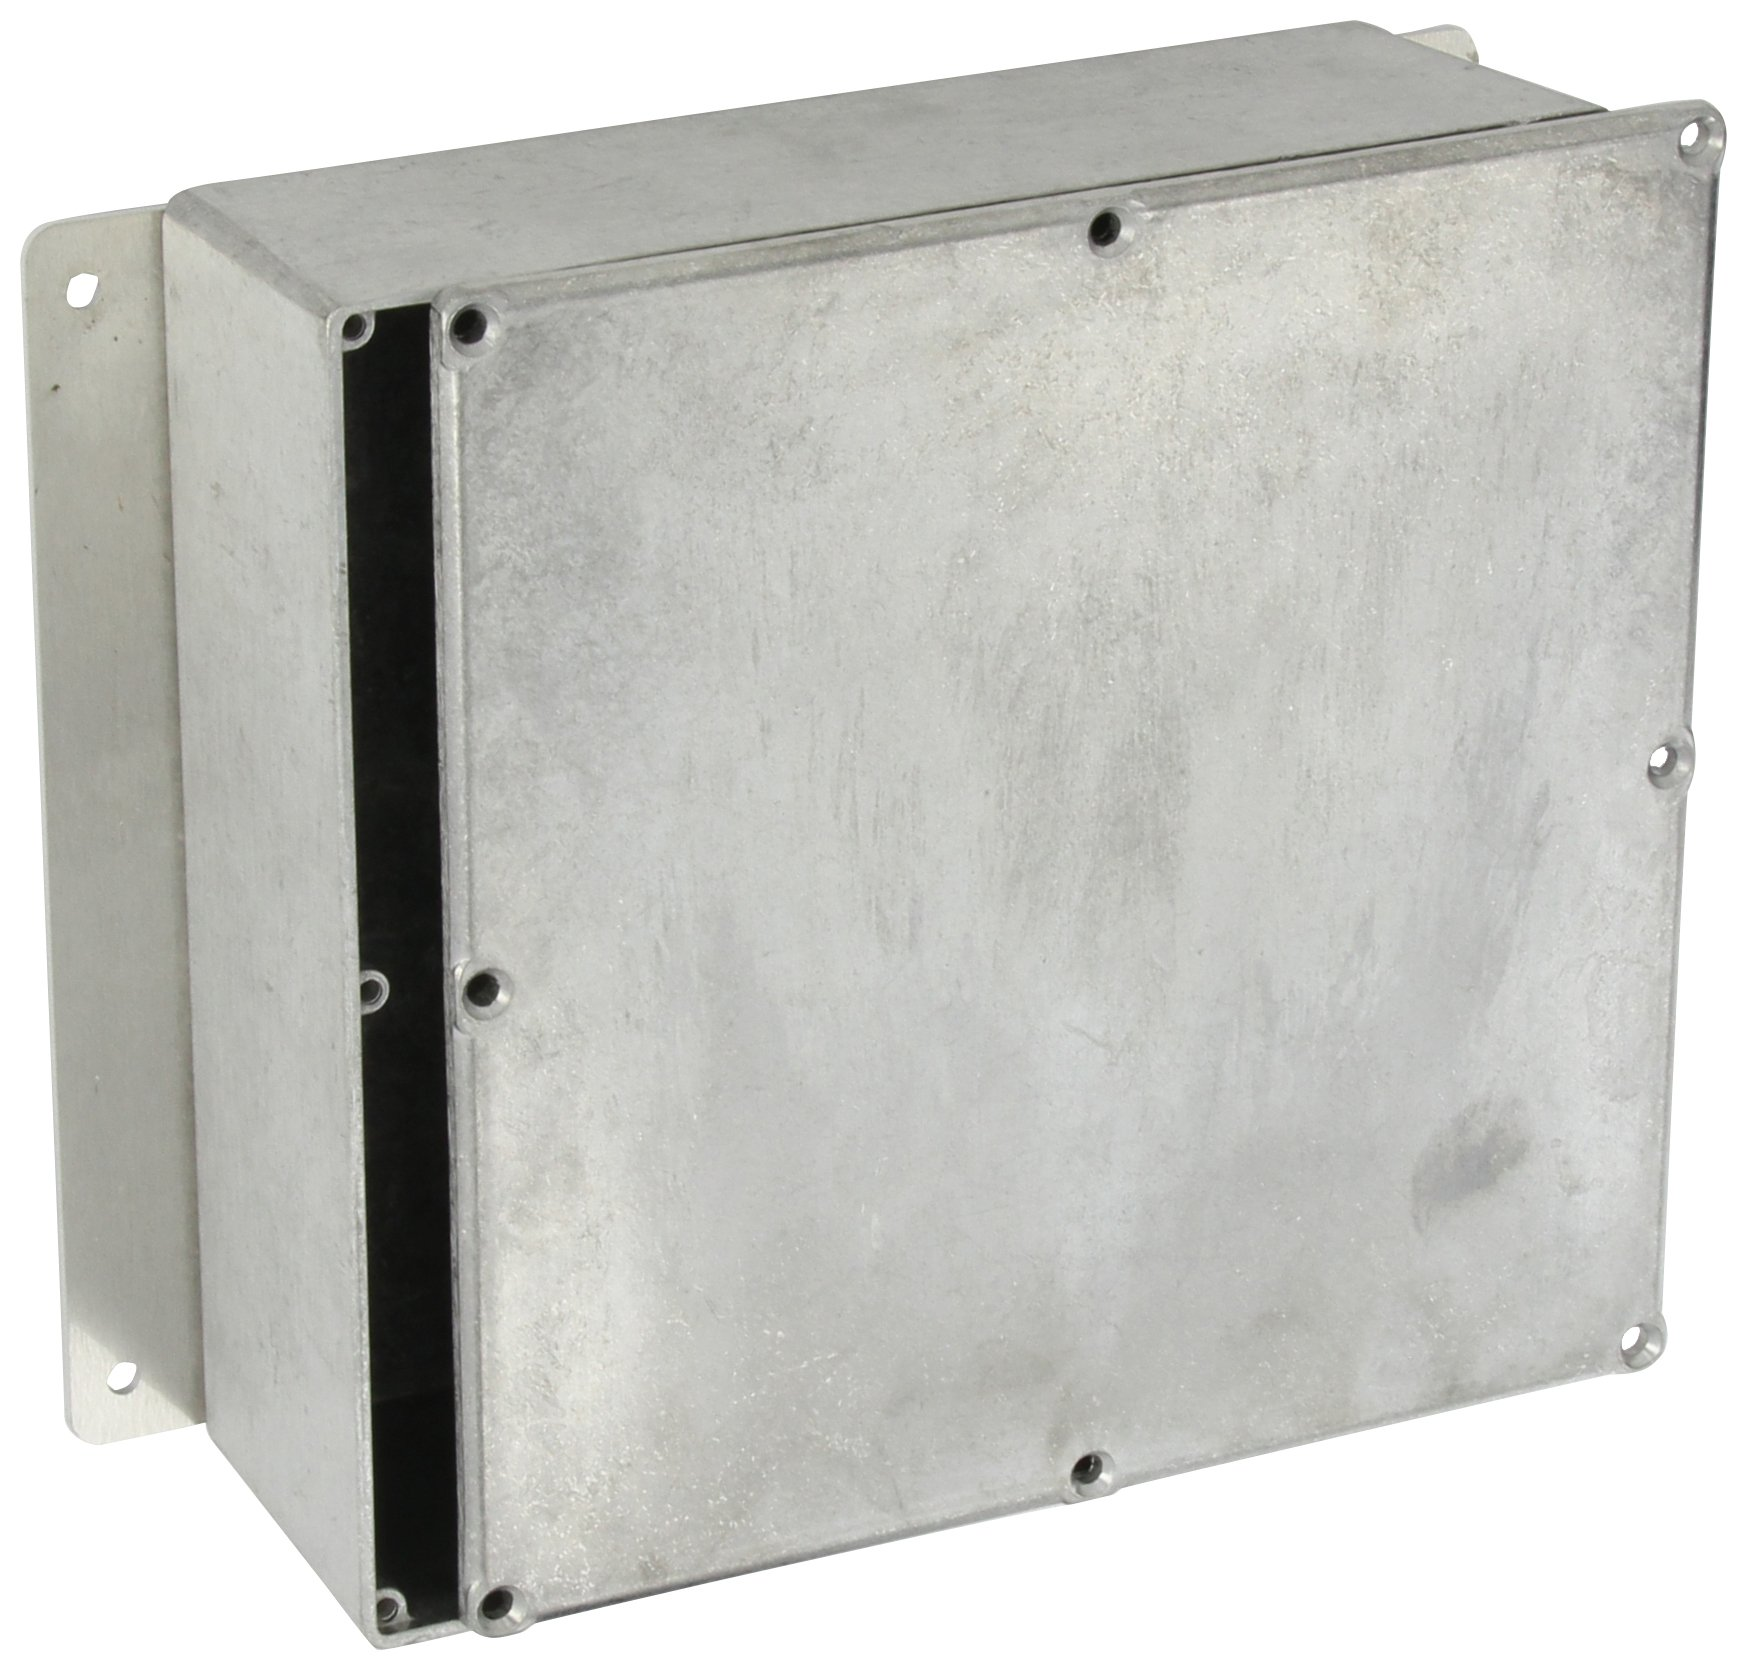 BUD Industries CU-4478 Die Cast Aluminum Econobox with Mounting Bracket, 7-1/2'' Length x 7-1/2'' Width x 2-39/64'' Height, Natural Finish